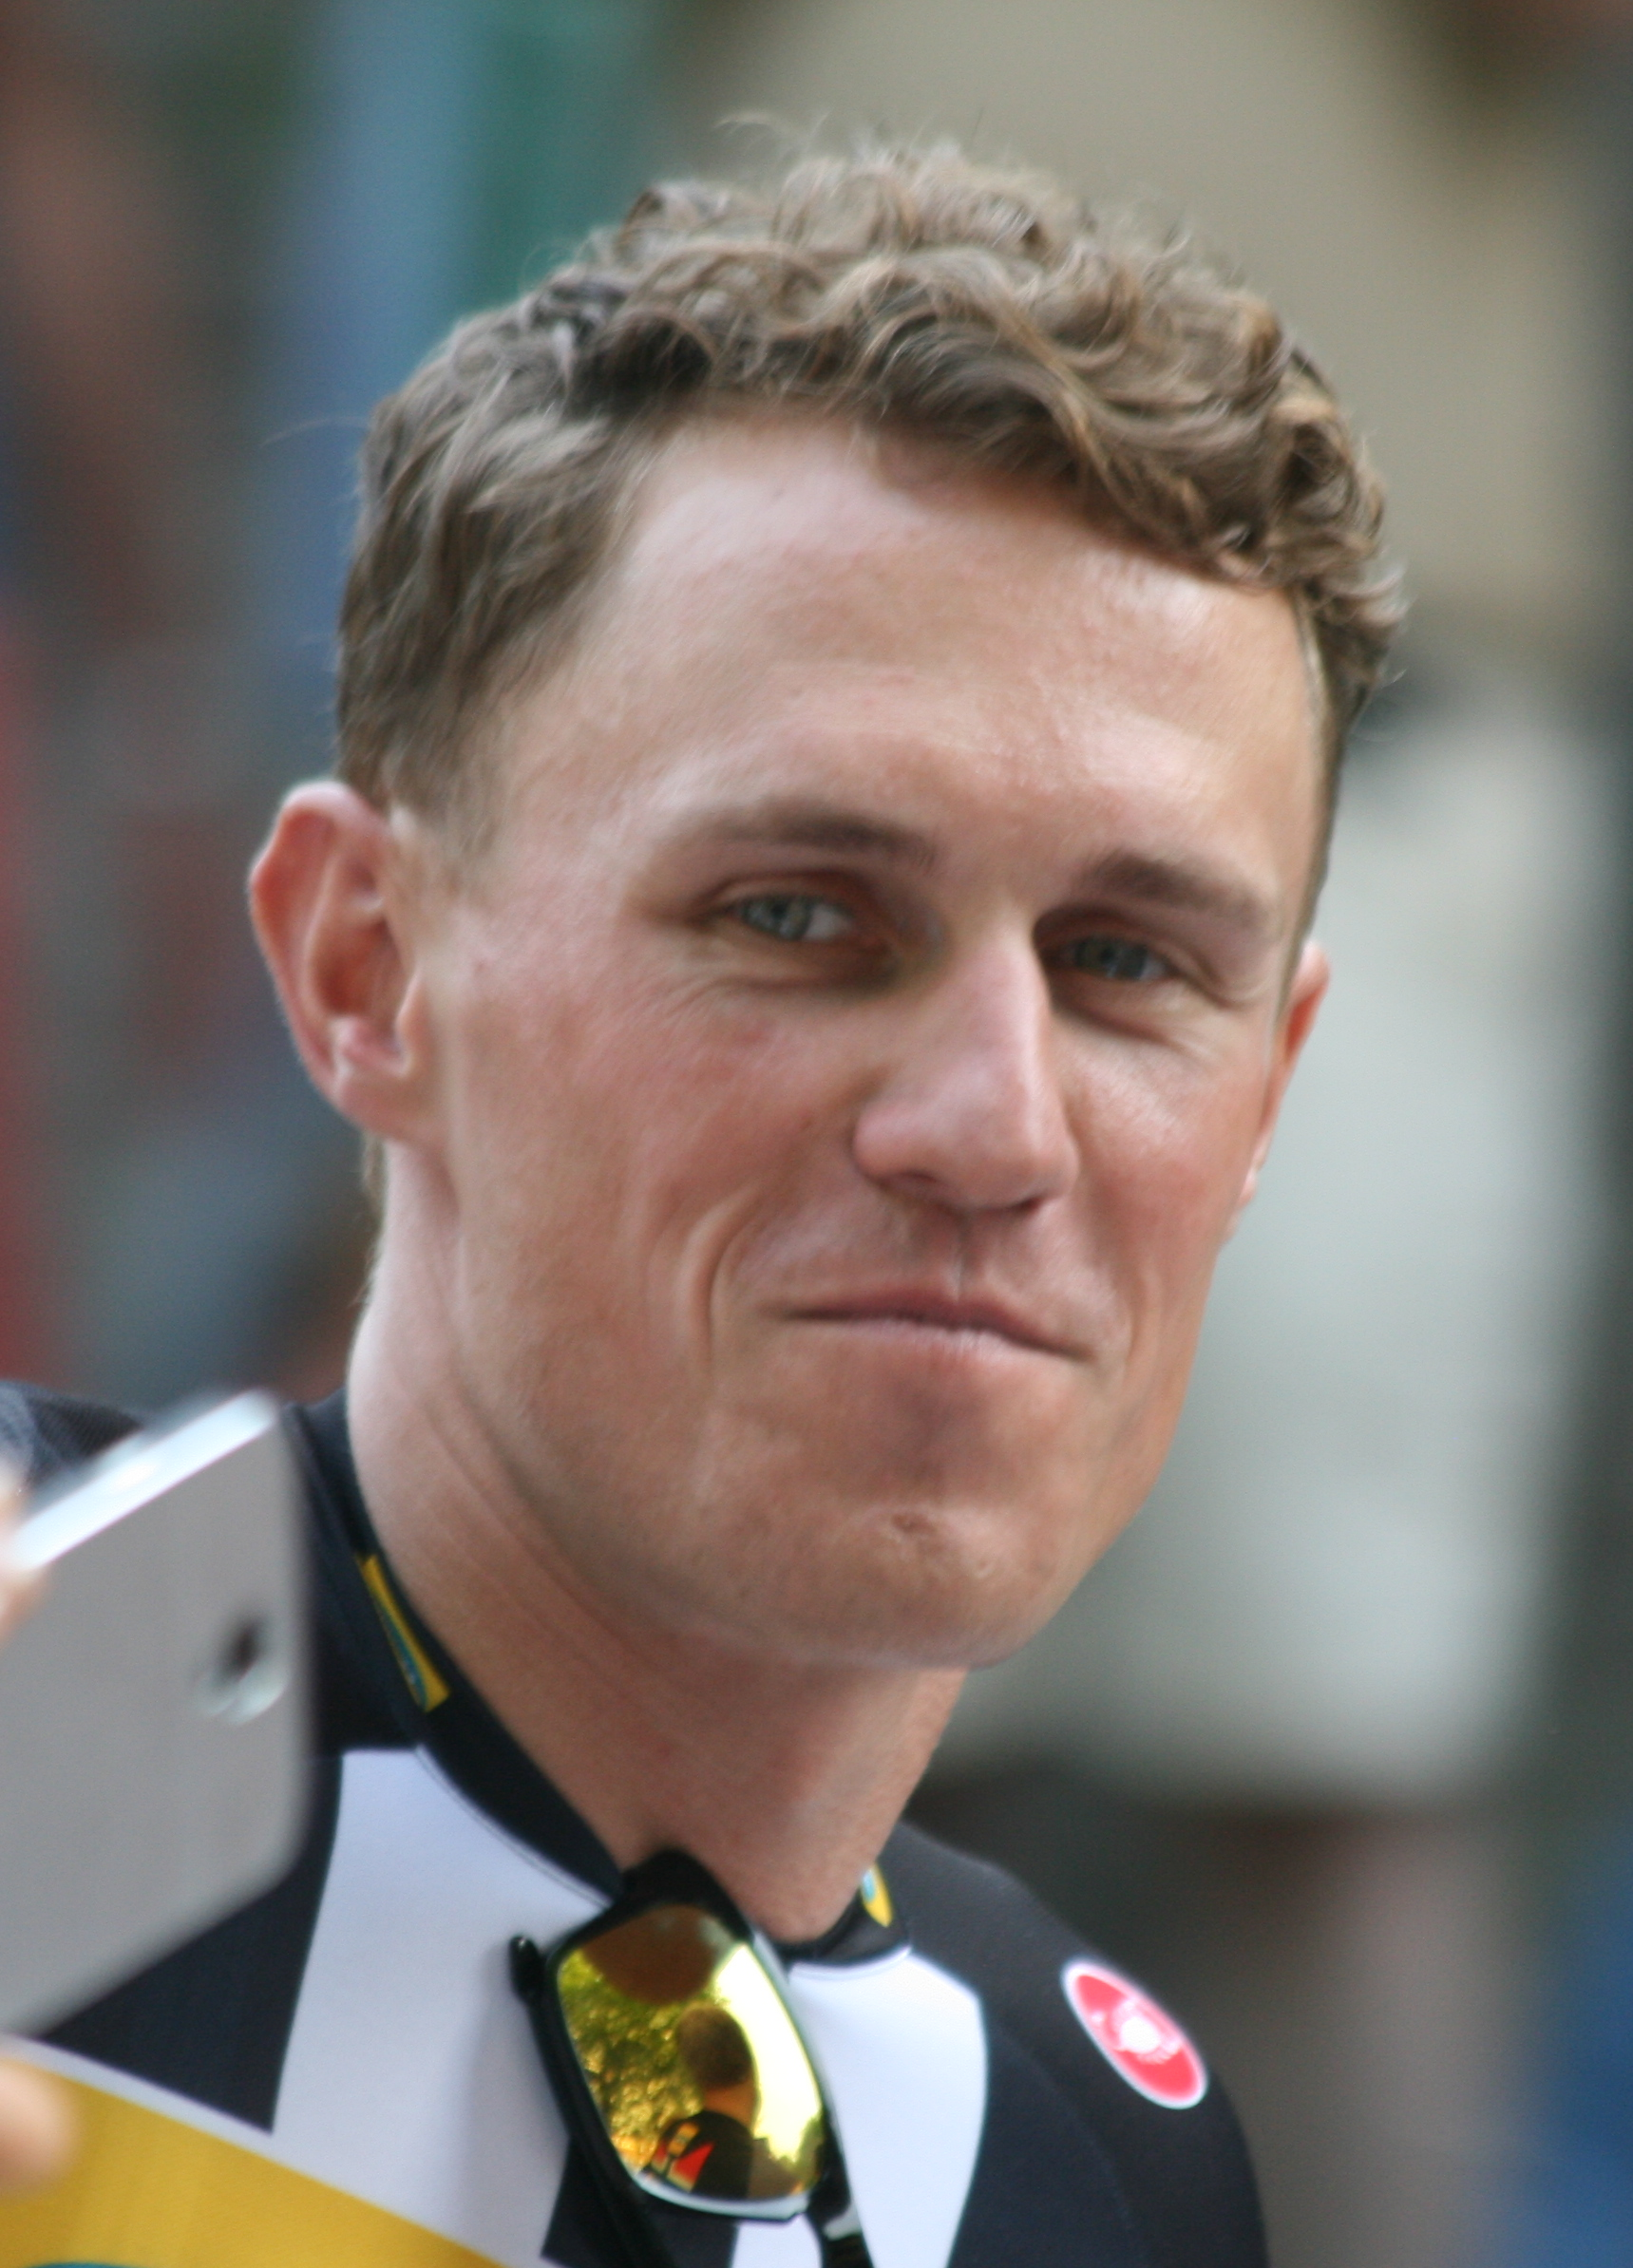 The 34-year old son of father (?) and mother(?) Serge Pauwels in 2018 photo. Serge Pauwels earned a  million dollar salary - leaving the net worth at 0.7 million in 2018